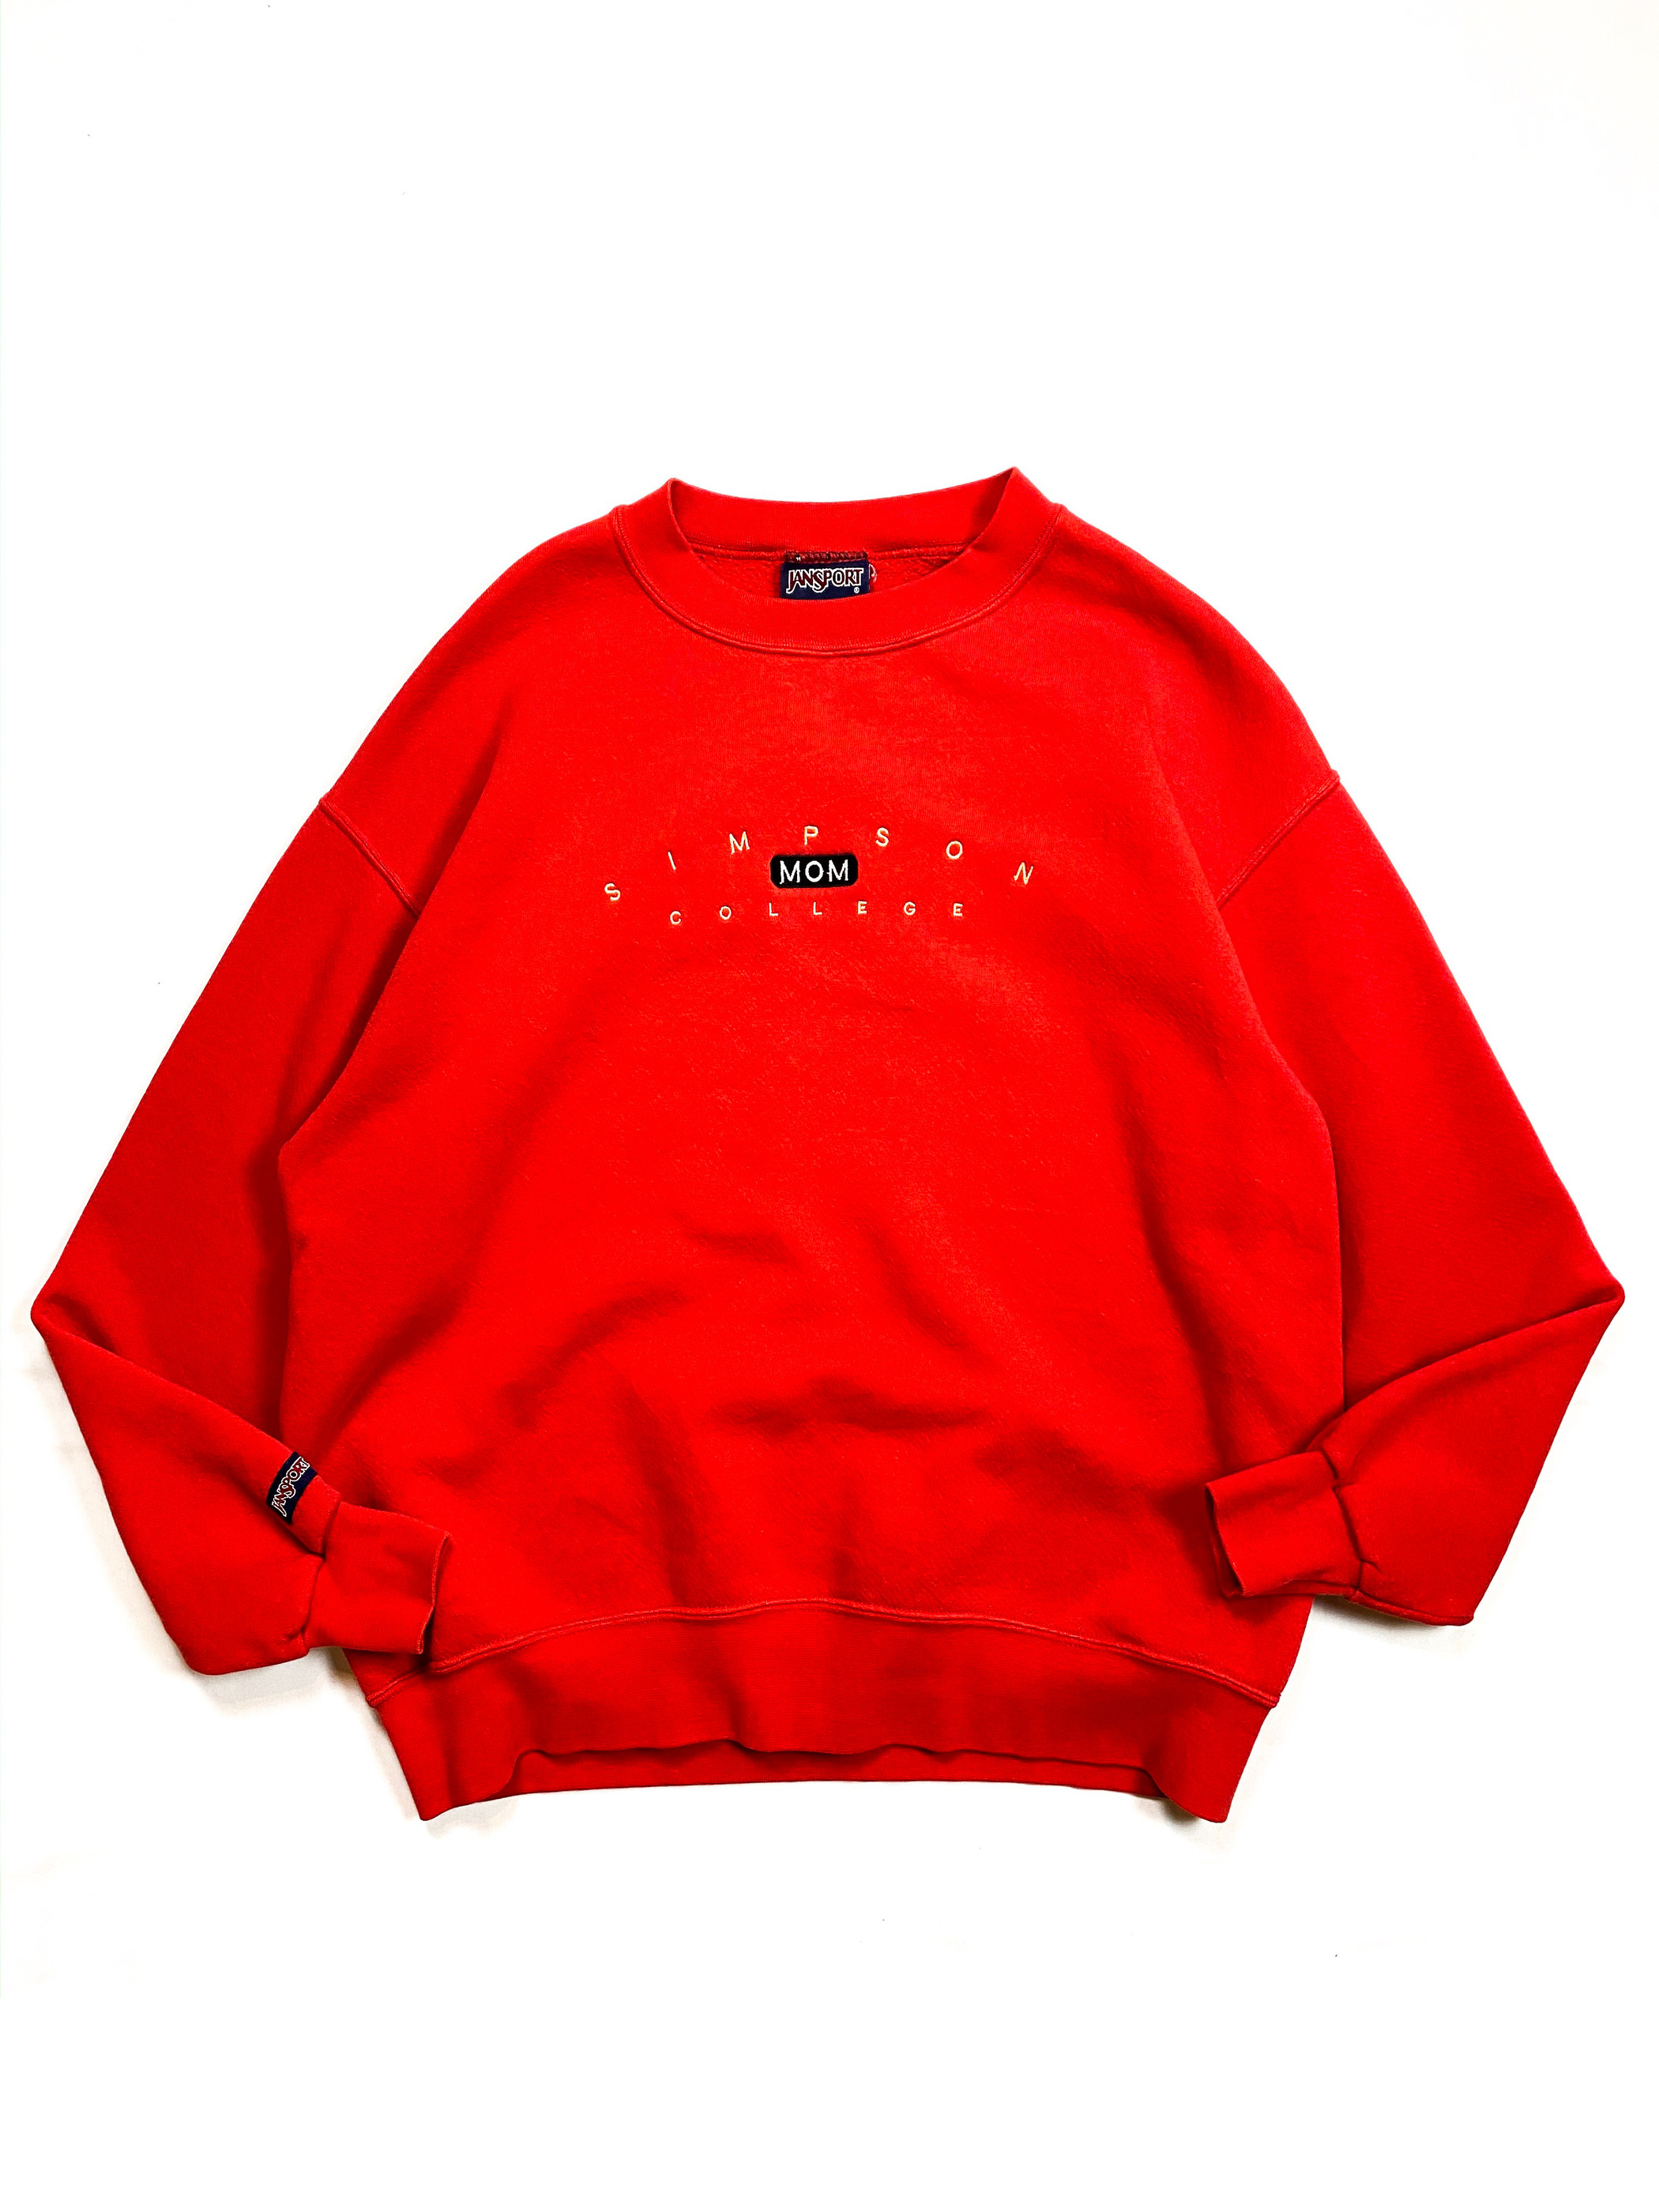 90's JANSPORT embroidery sweat